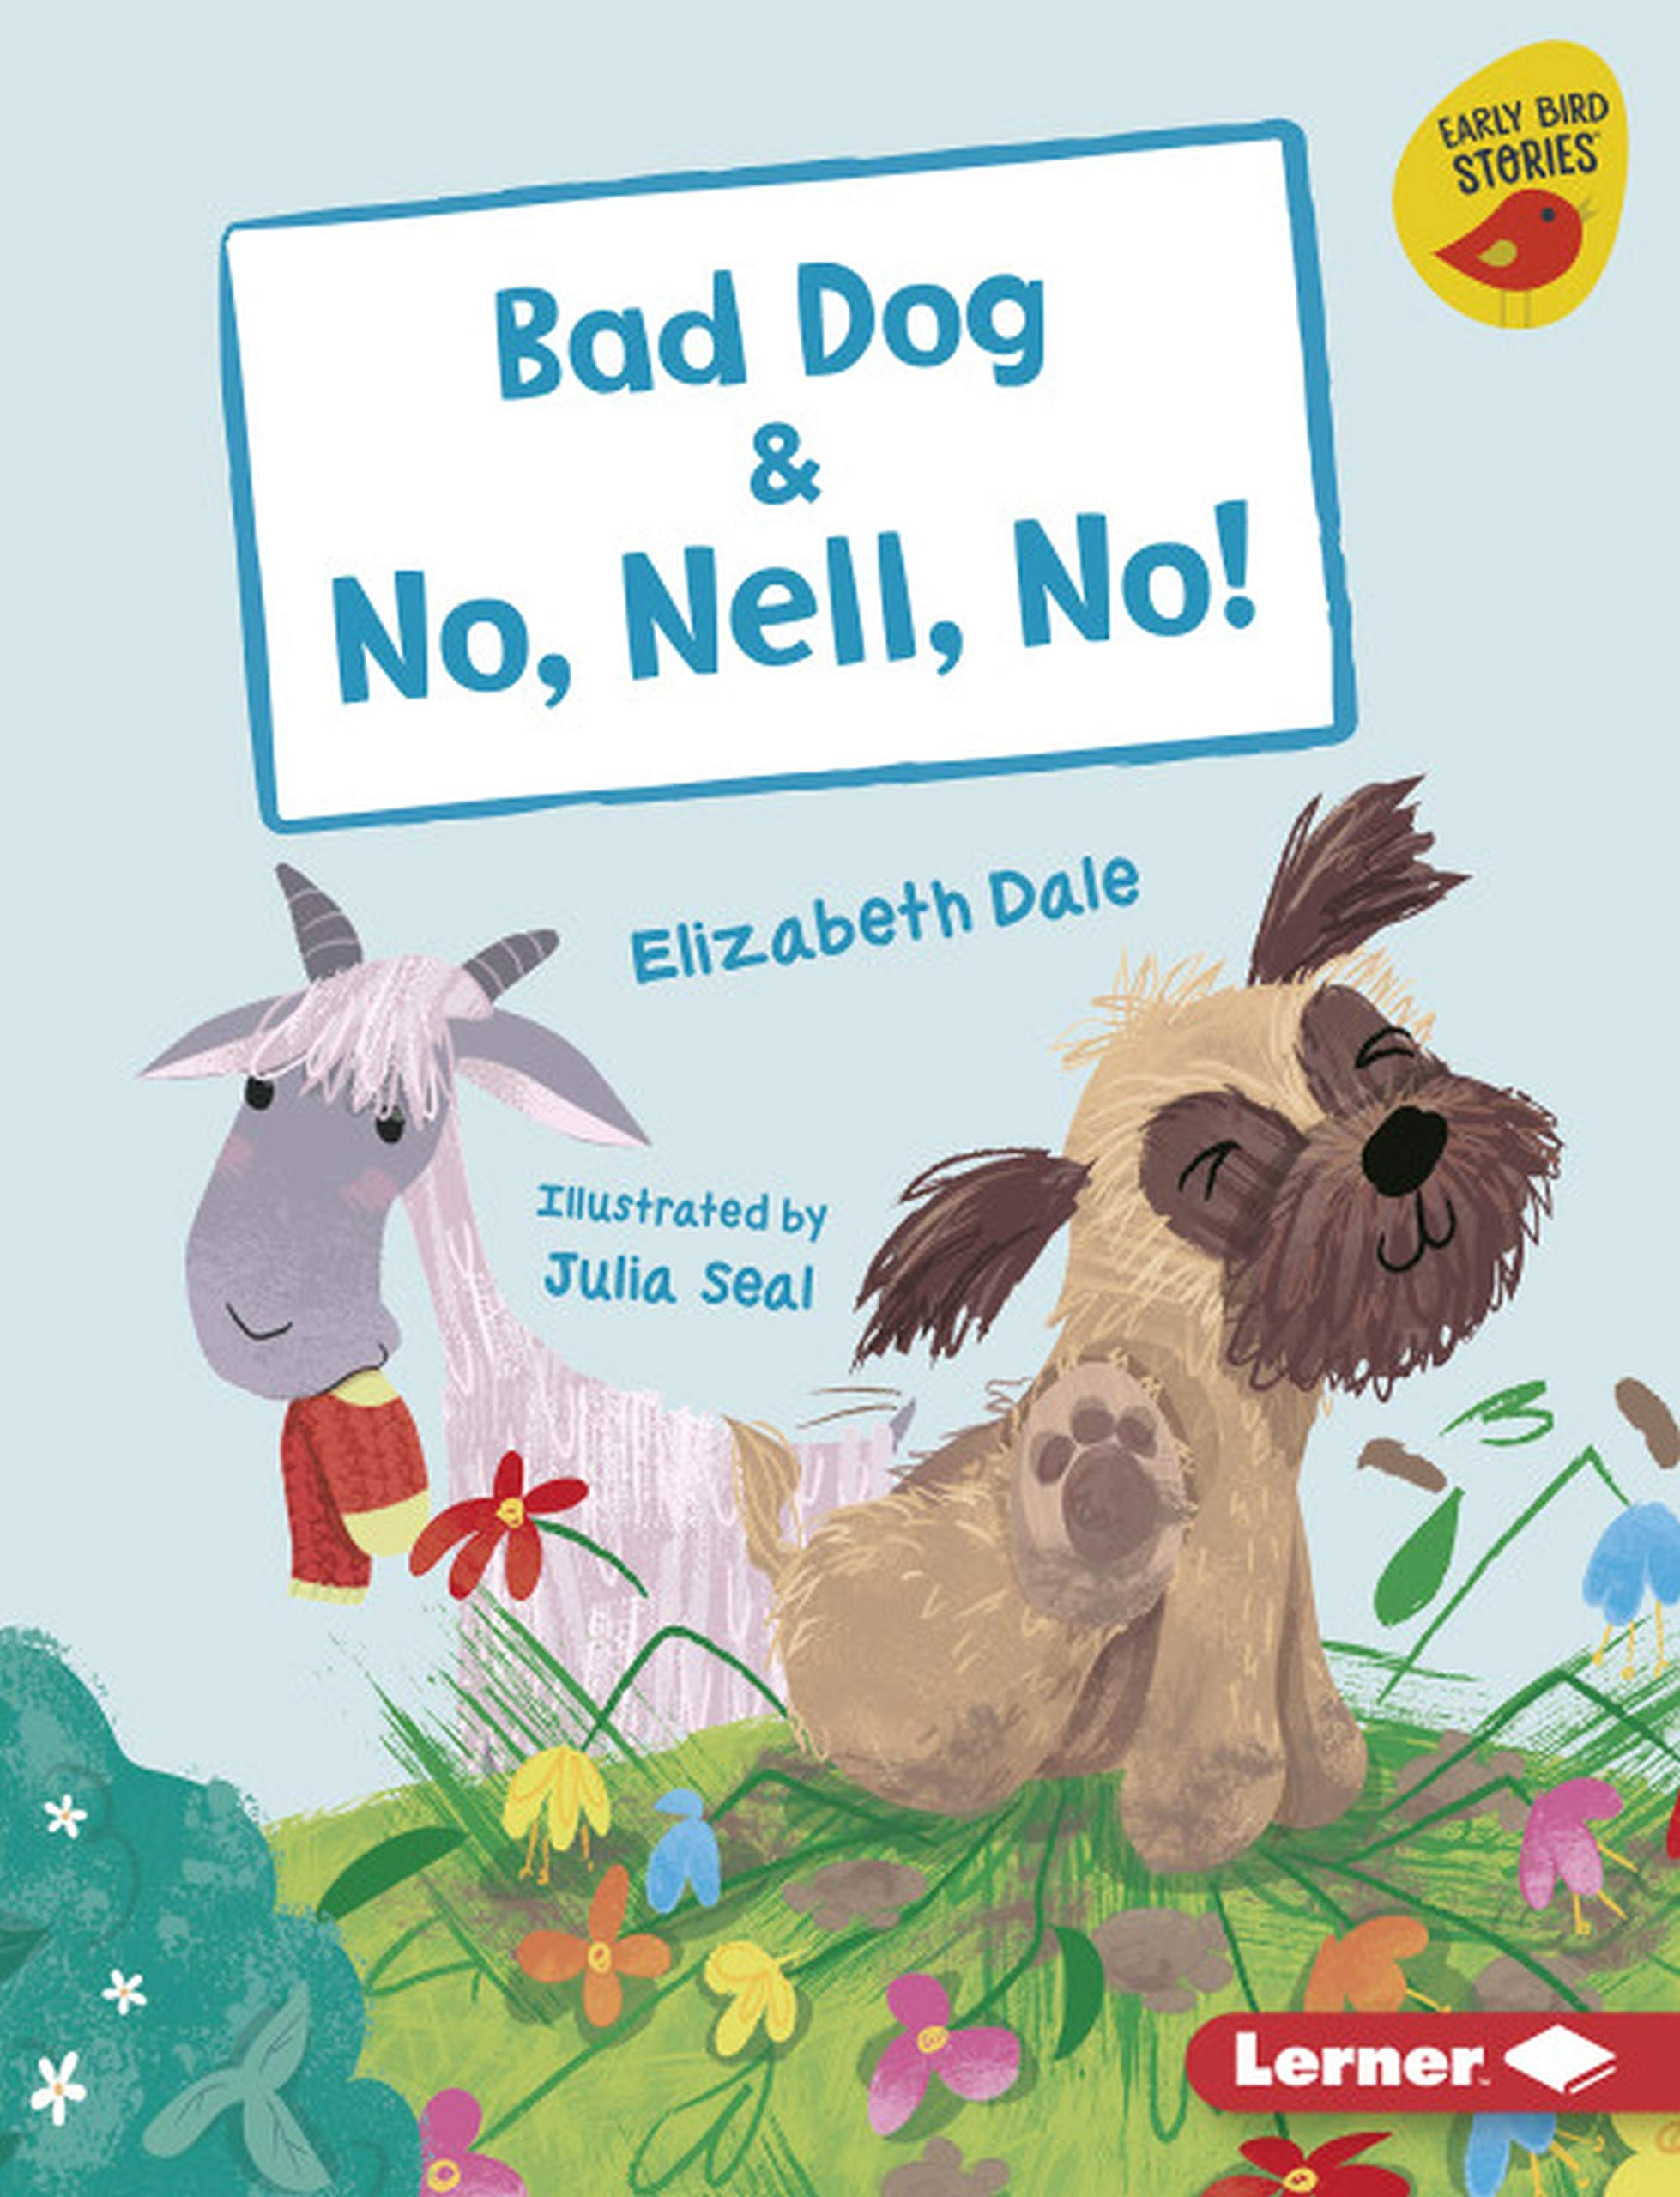 Bad dog ; & No, Nell, no! / by Elizabeth Dale ; illustrated by Julia Seal. image cover